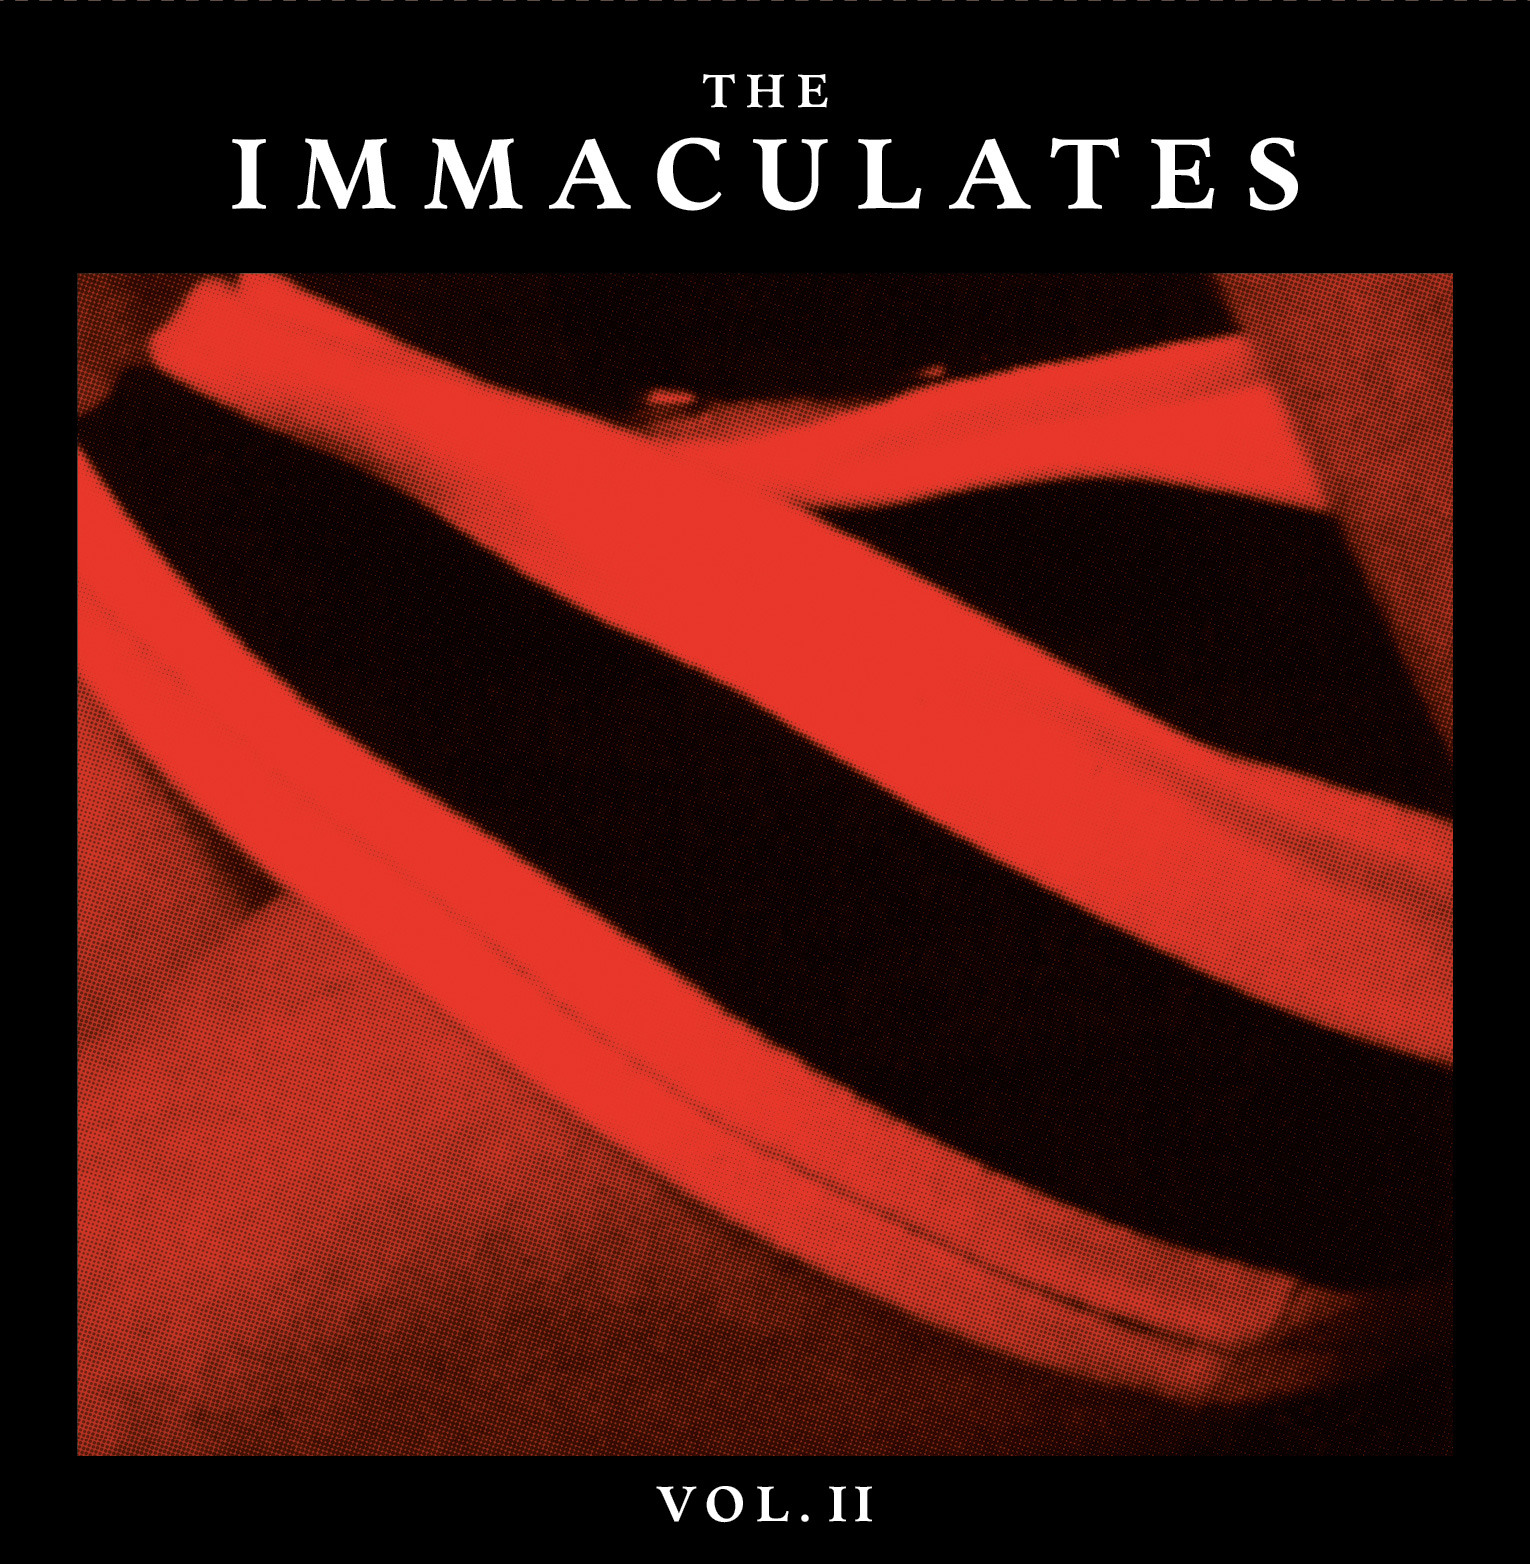 The Immaculates Vol. II